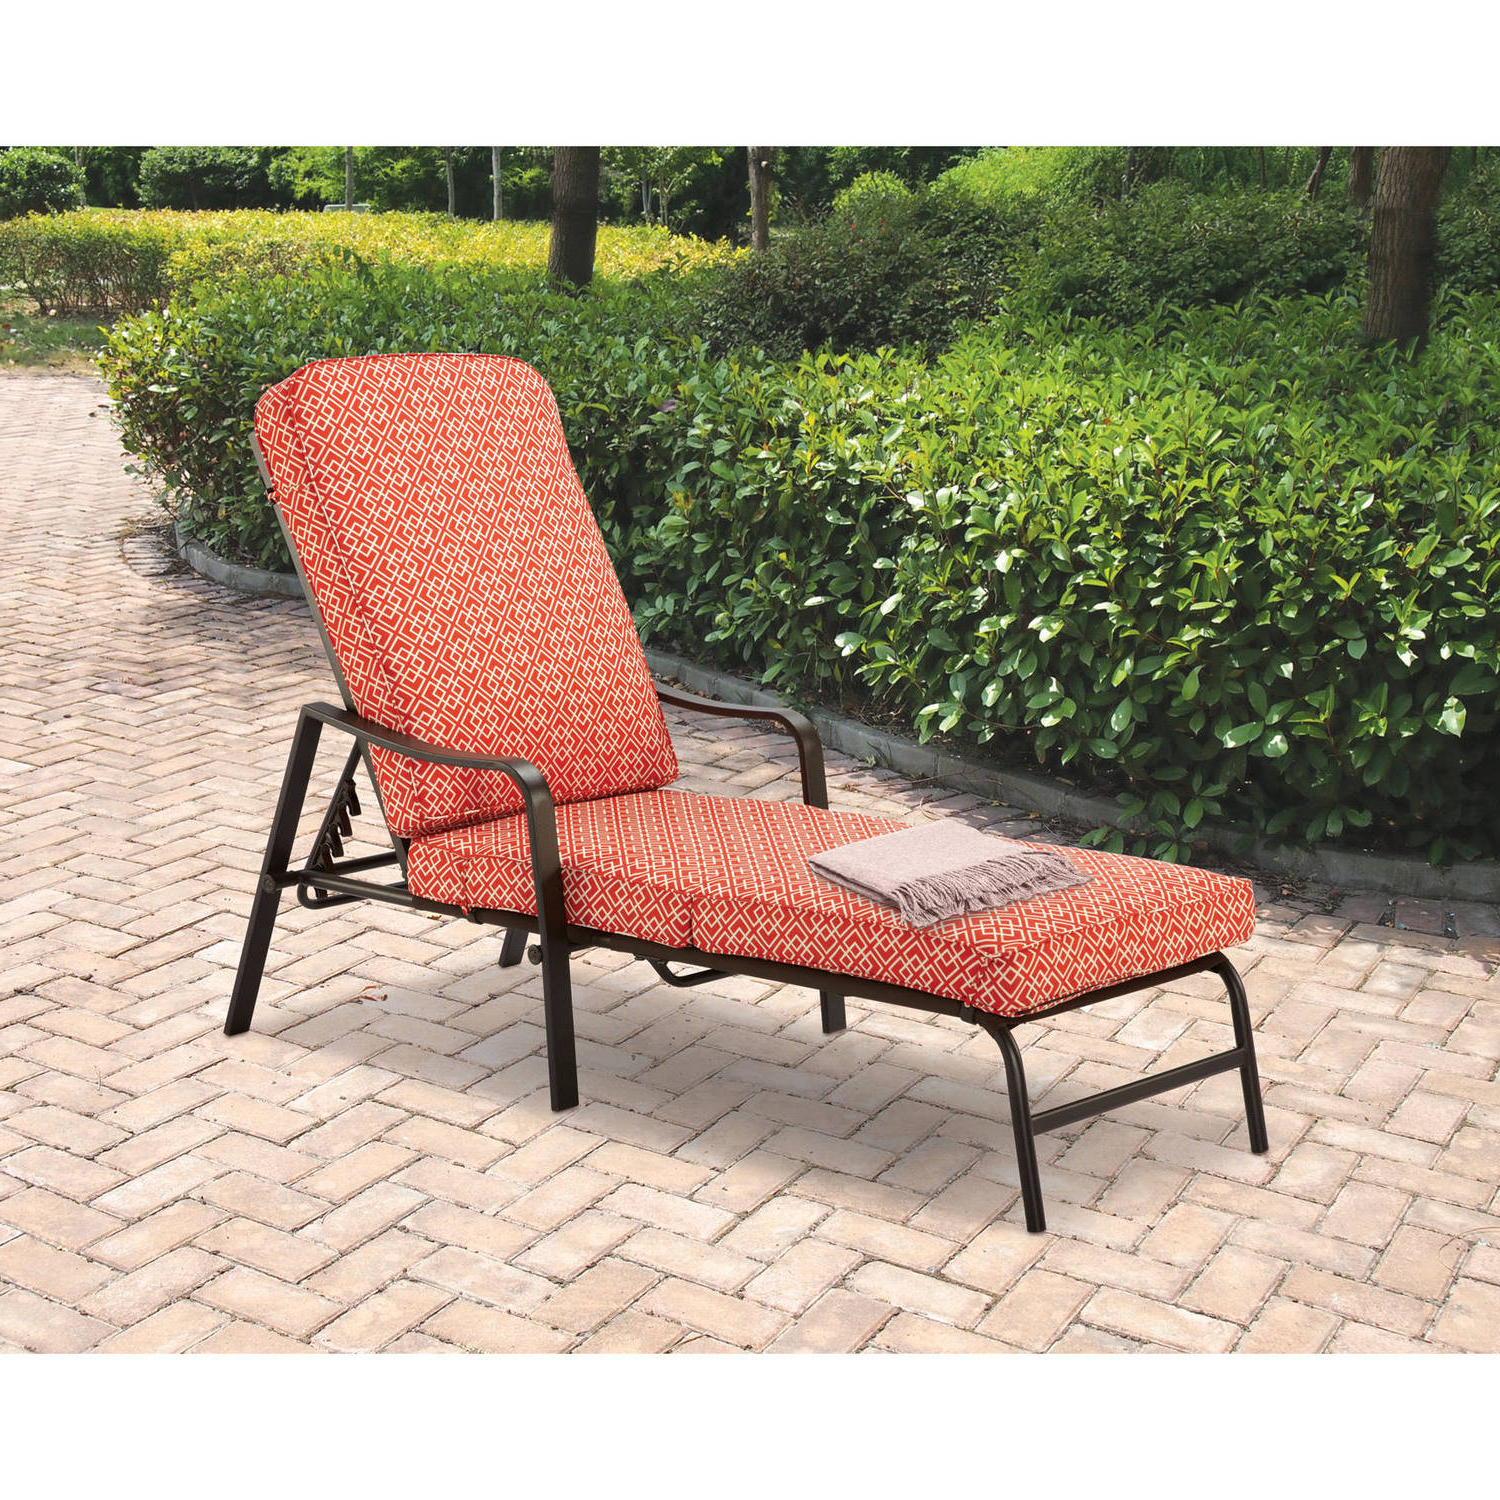 Preferred White Wicker Adjustable Chaise Loungers With Cushions Intended For Mainstays Outdoor Chaise Lounge, Orange Geo Pattern (View 13 of 25)